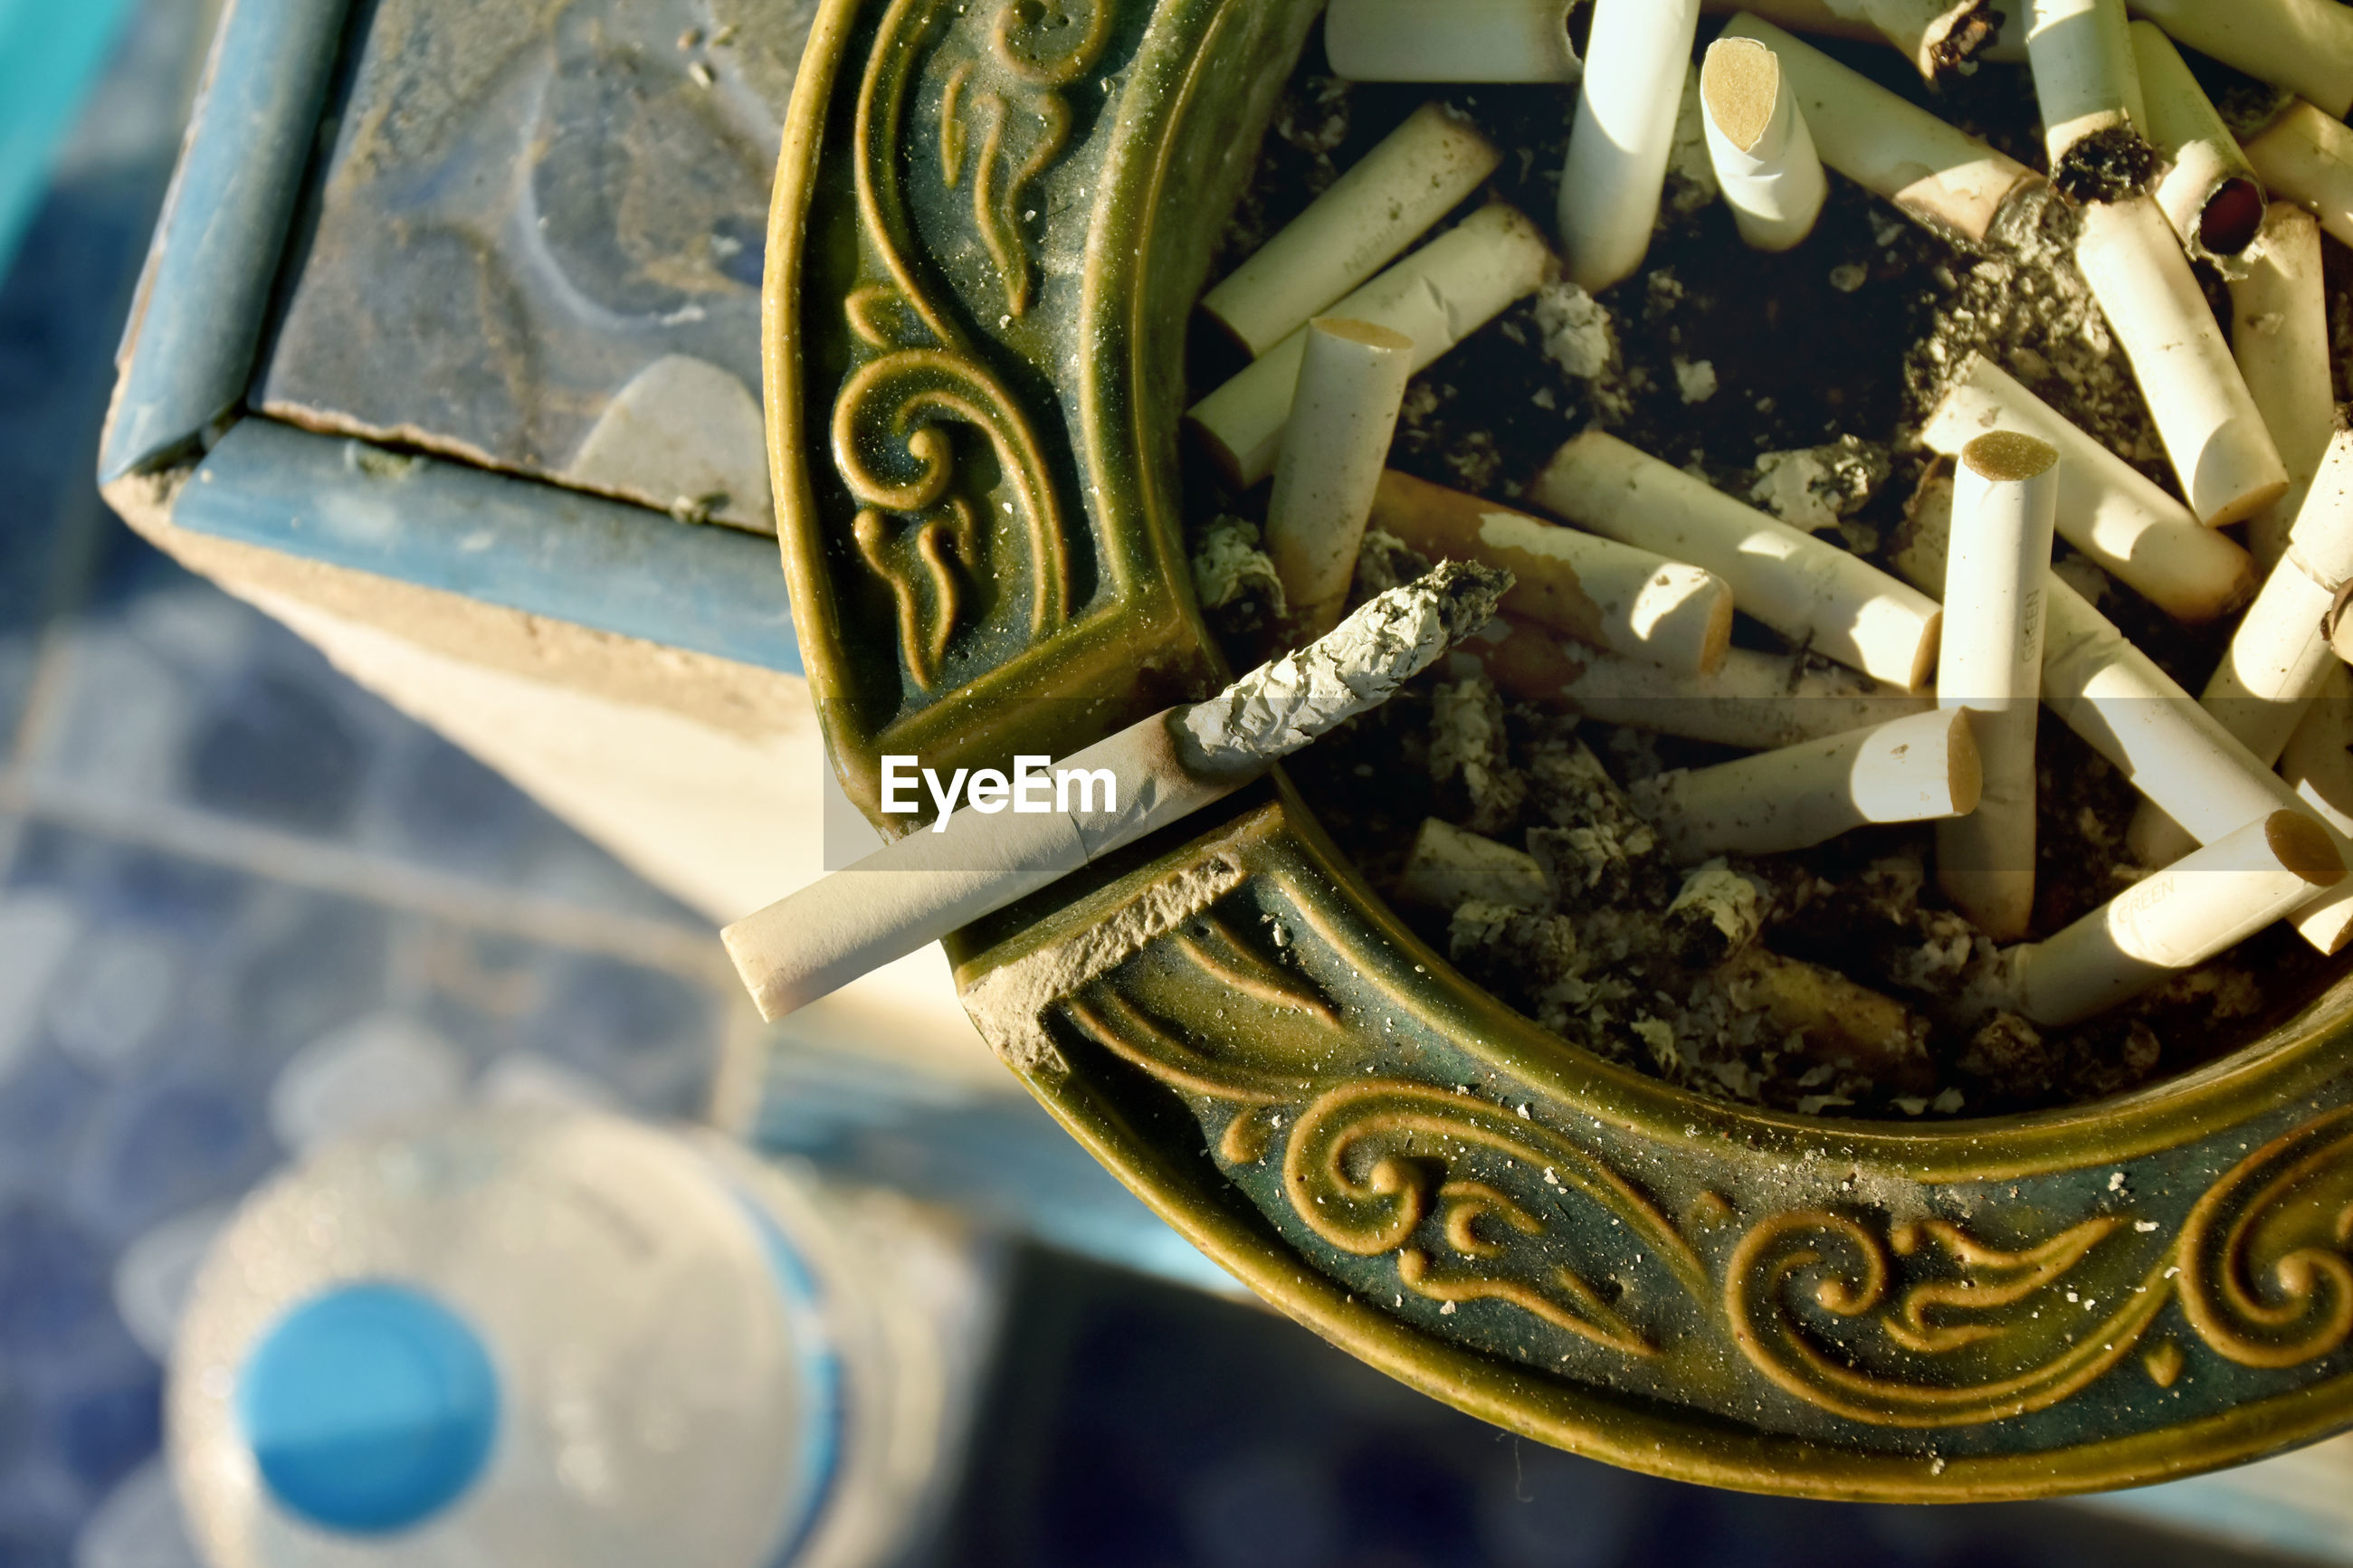 HIGH ANGLE VIEW OF CIGARETTE SMOKING